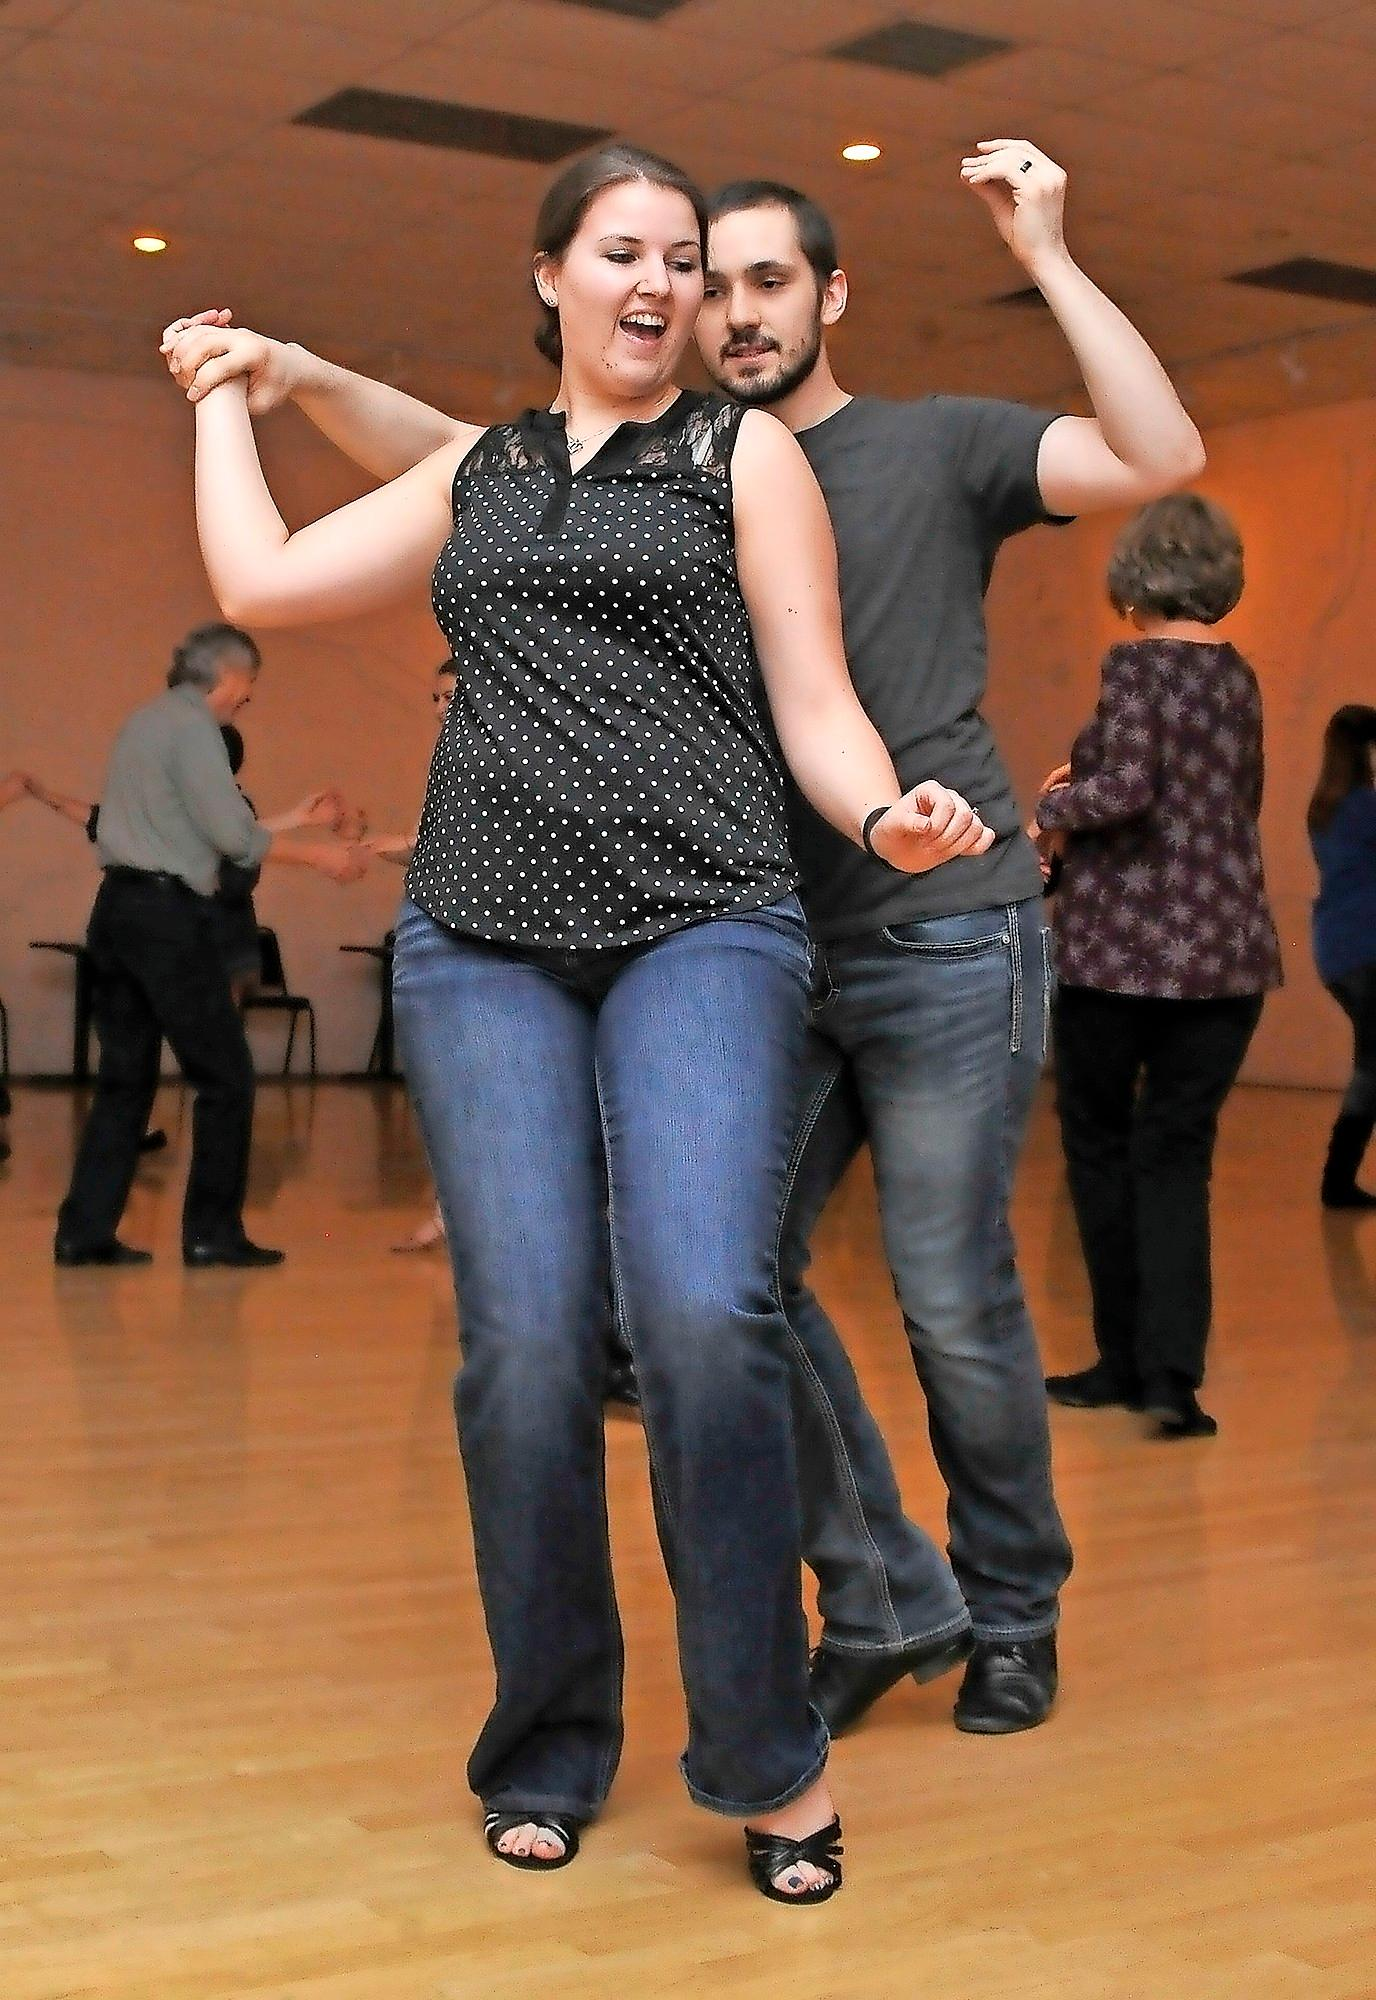 Jessica Kaiserman and Derrick Coghill share a dance during a Southern Oregon Swing session. - PHOTO BY DENISE BARATTA